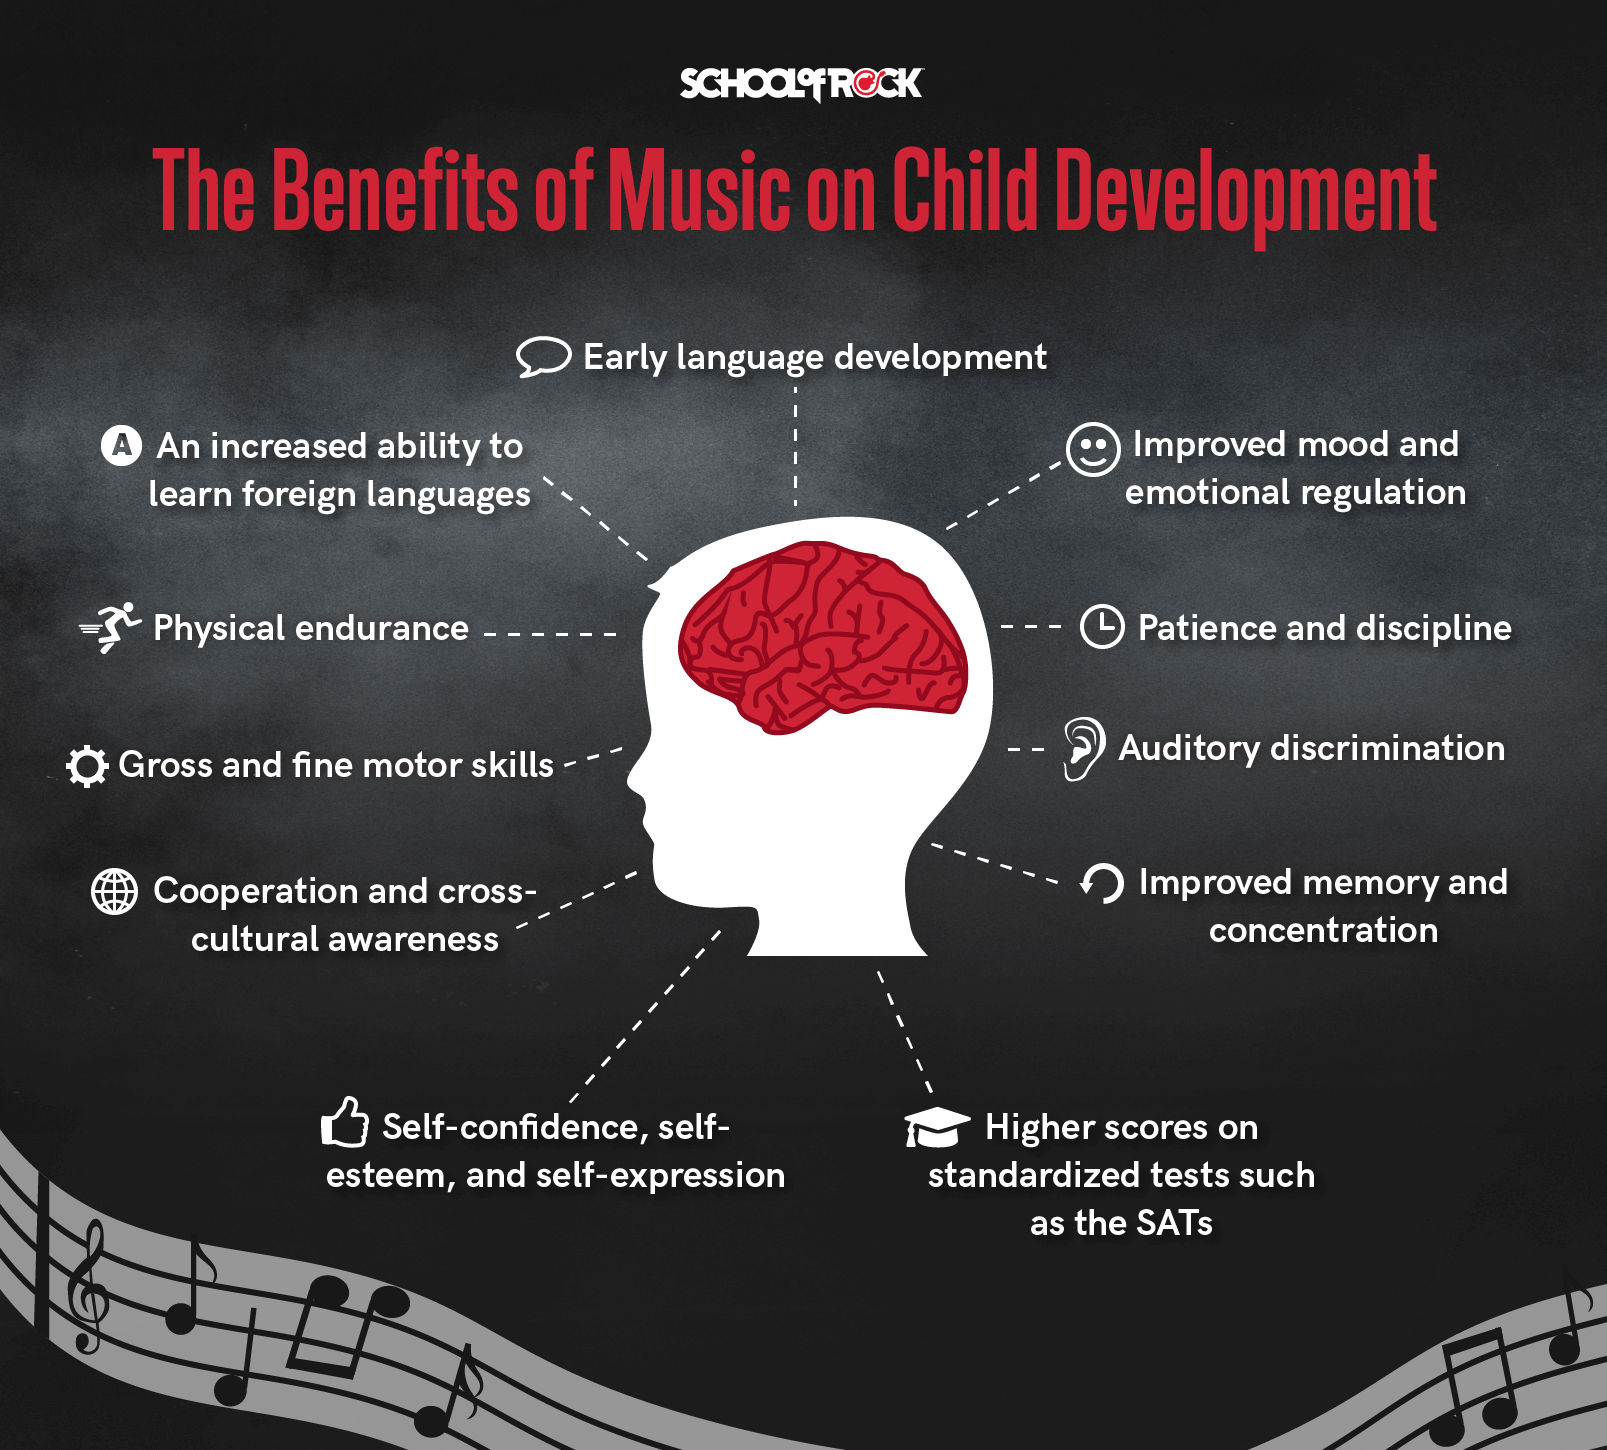 effects of music on child development